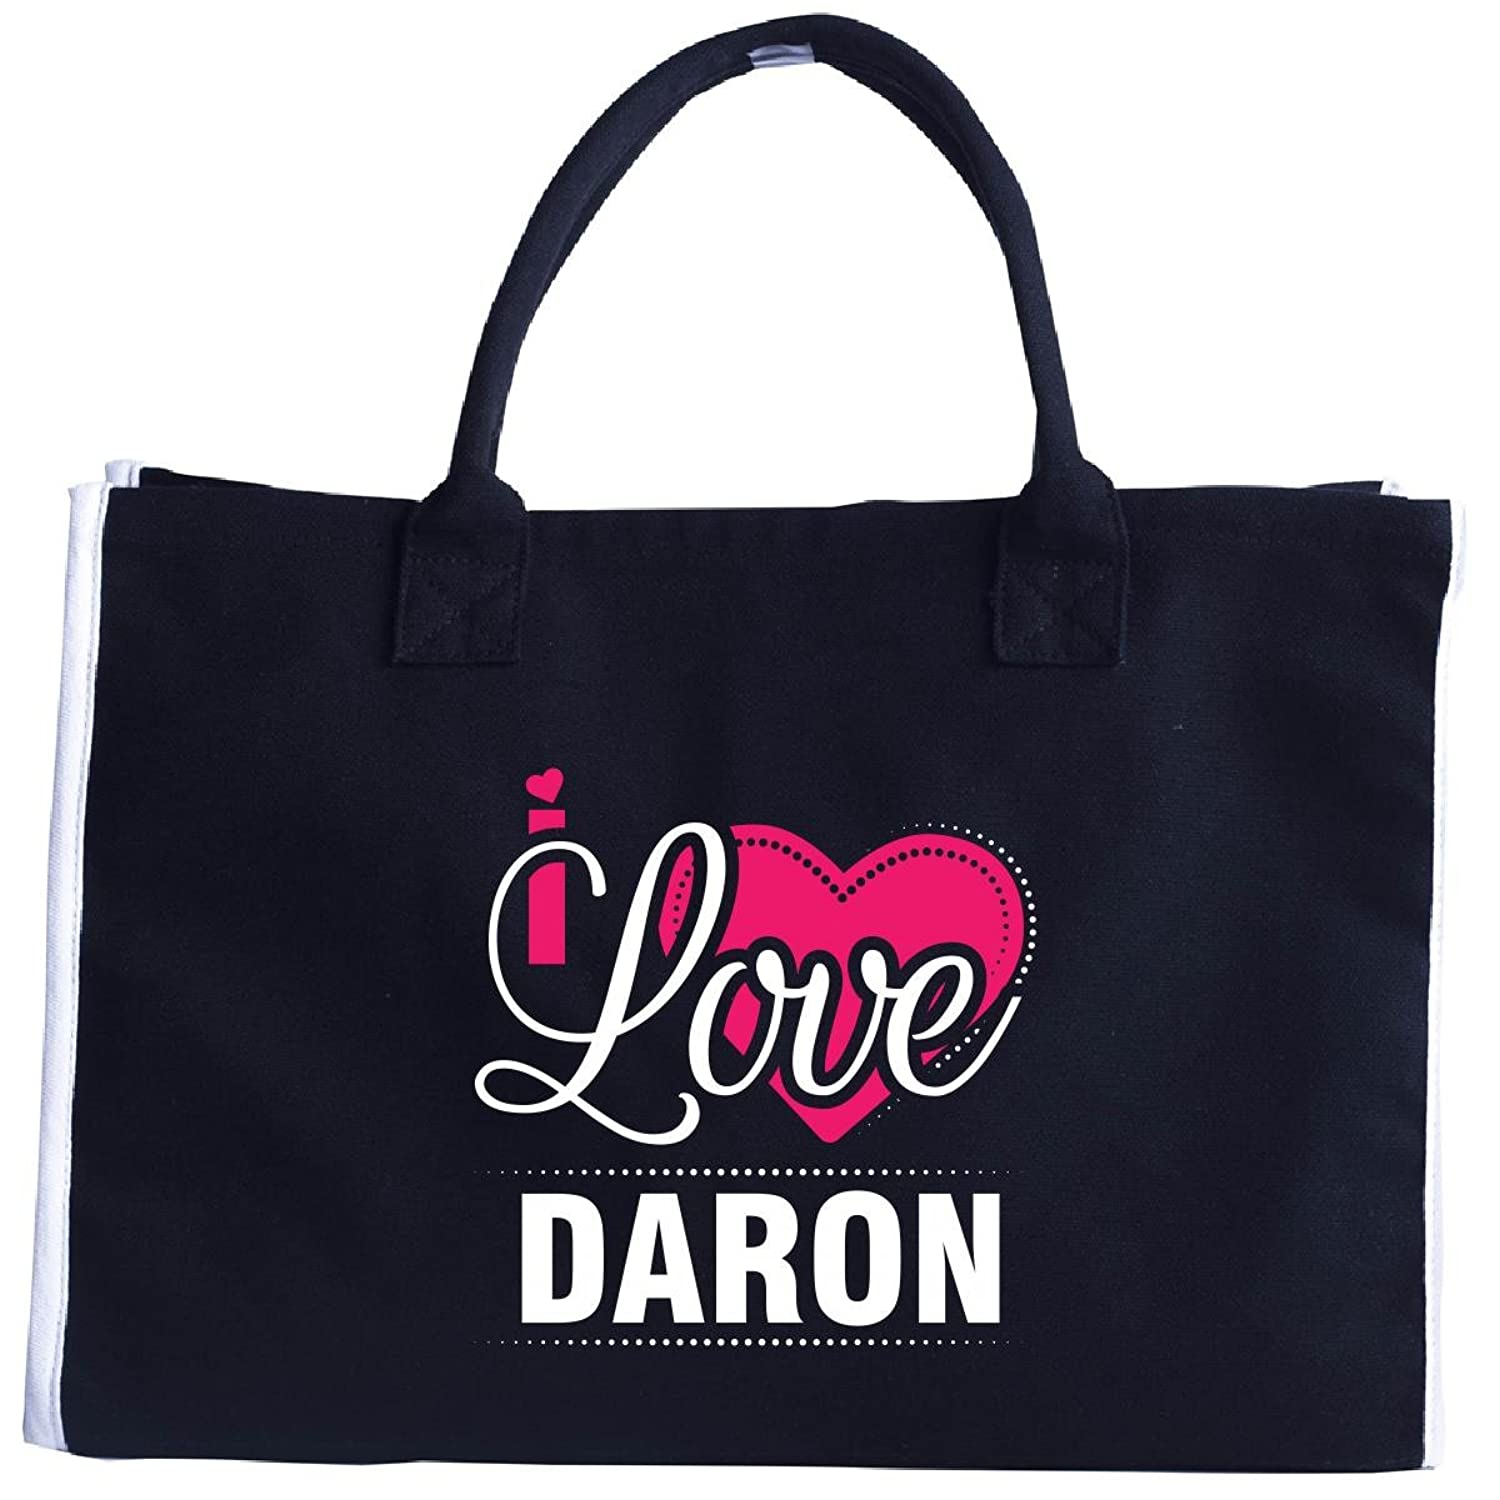 I Love Daron - Cool Gift For Daron From Girlfriend - Tote Bag